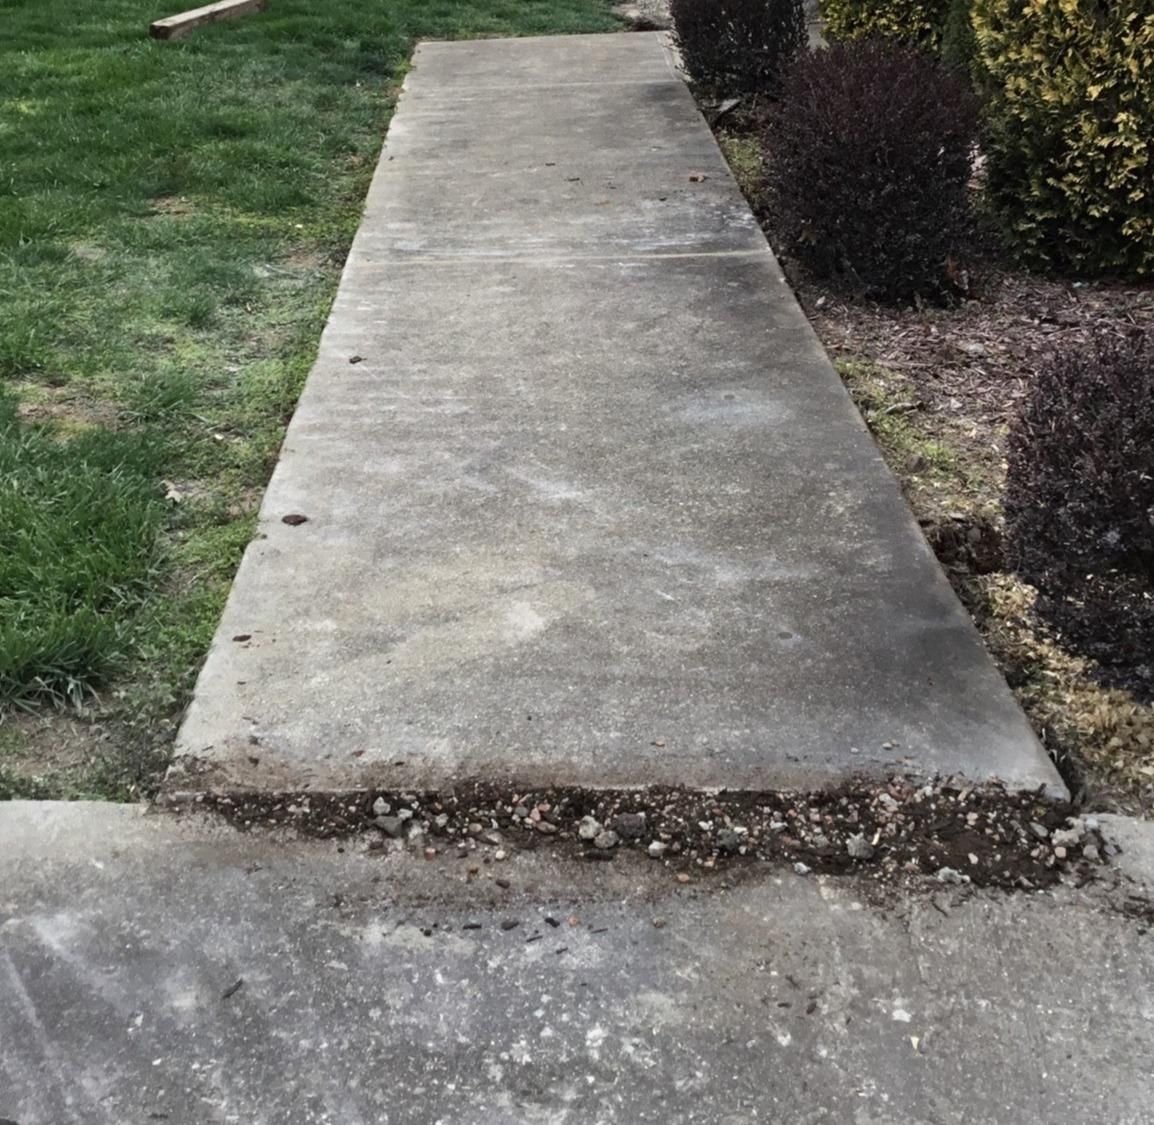 Polylevel Injection used to raise an unlevel sidewalk slab in Mt. Sterling, KY - Before Photo